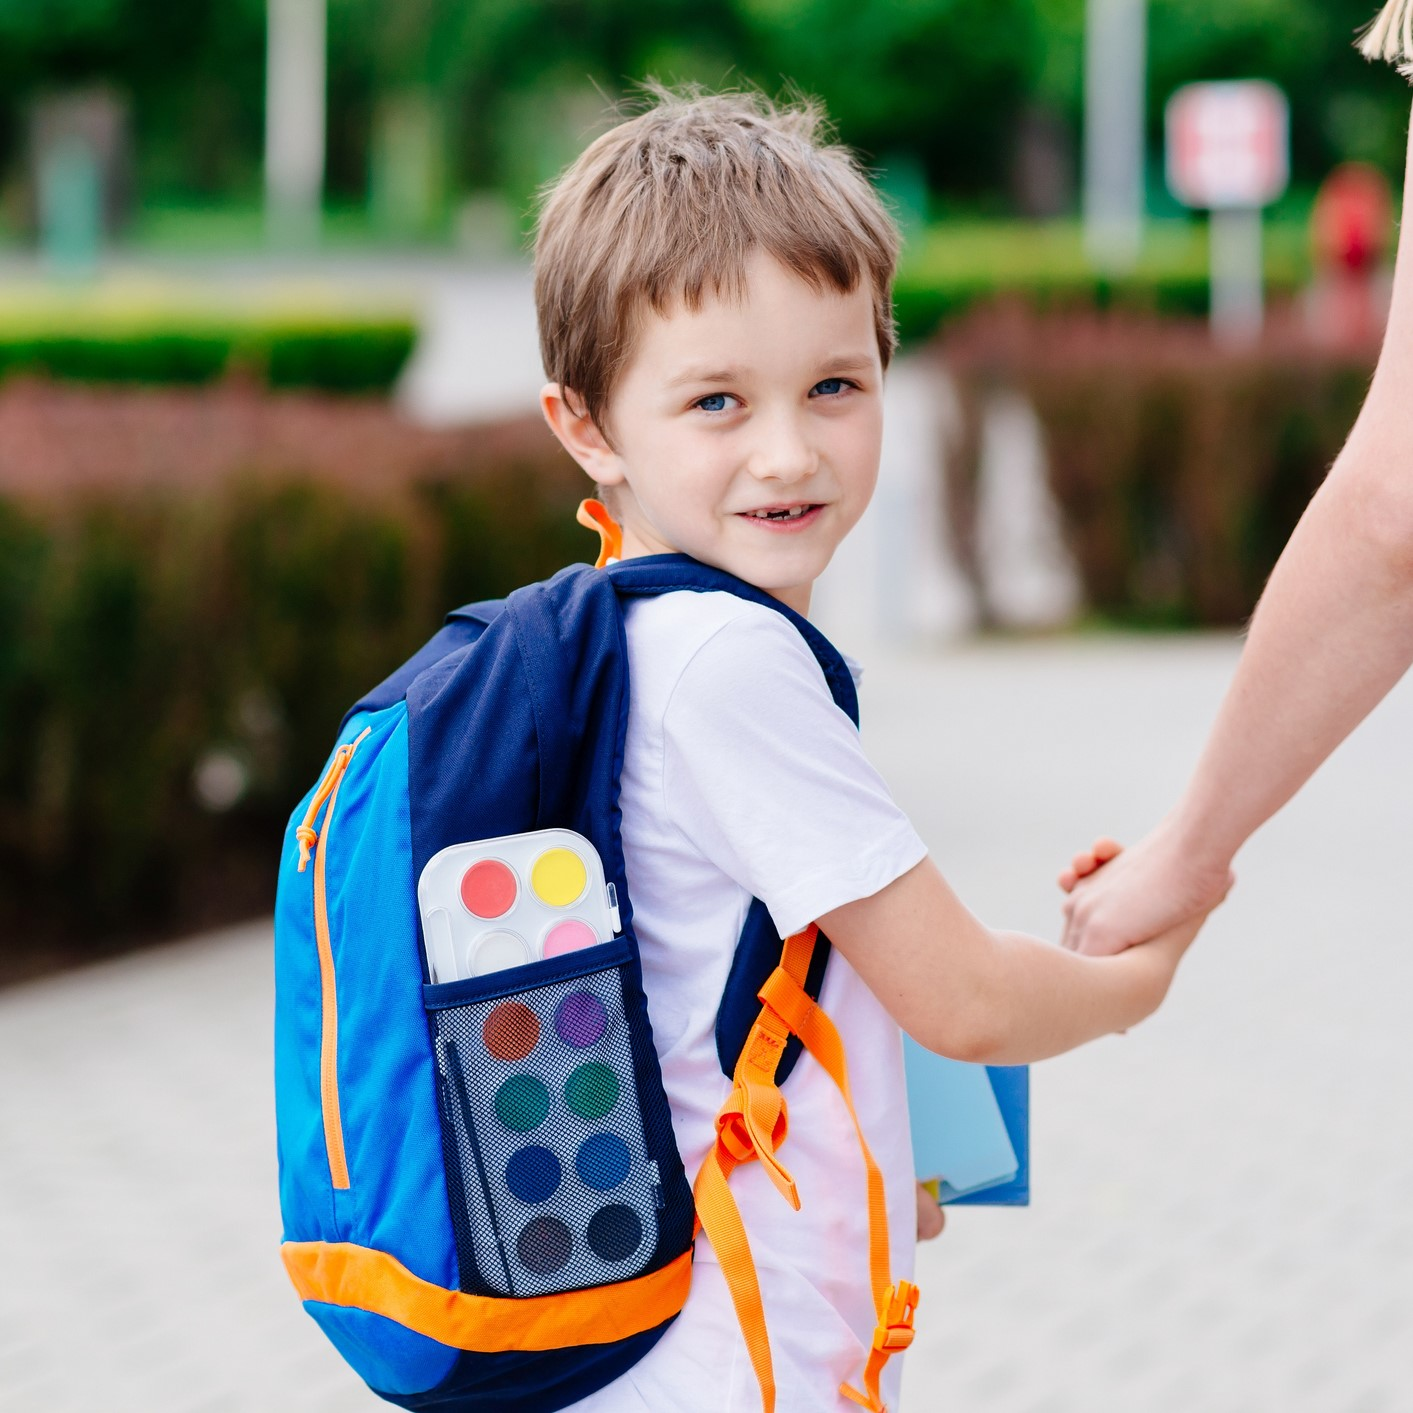 7-year-old boy with a backpack, holding his mother's hand in front of his school